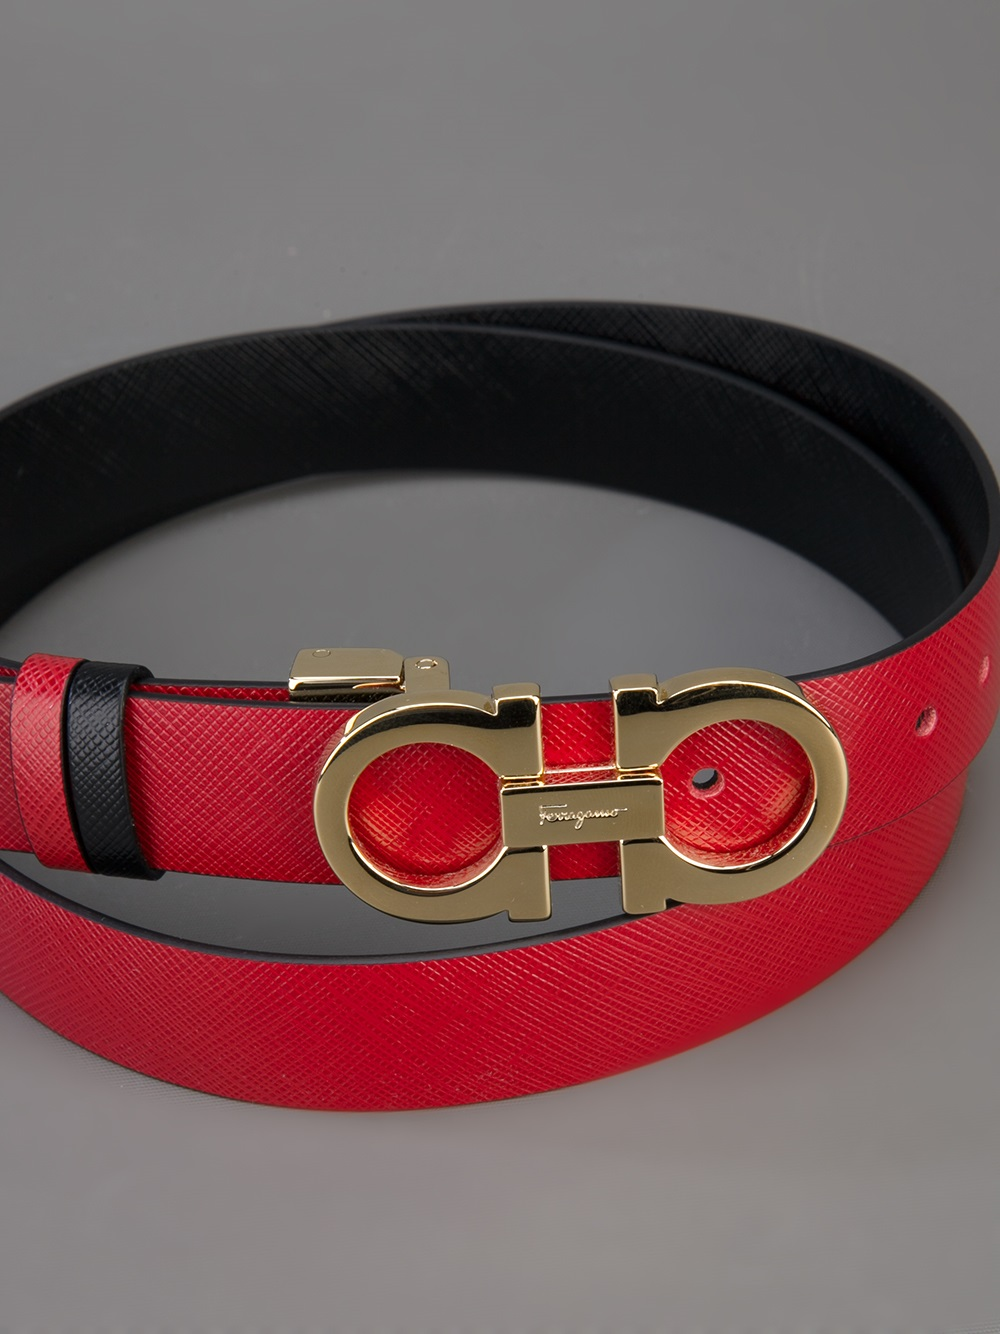 989e03b411c57 france lyst ferragamo gancino belt in red 4724a 5d418